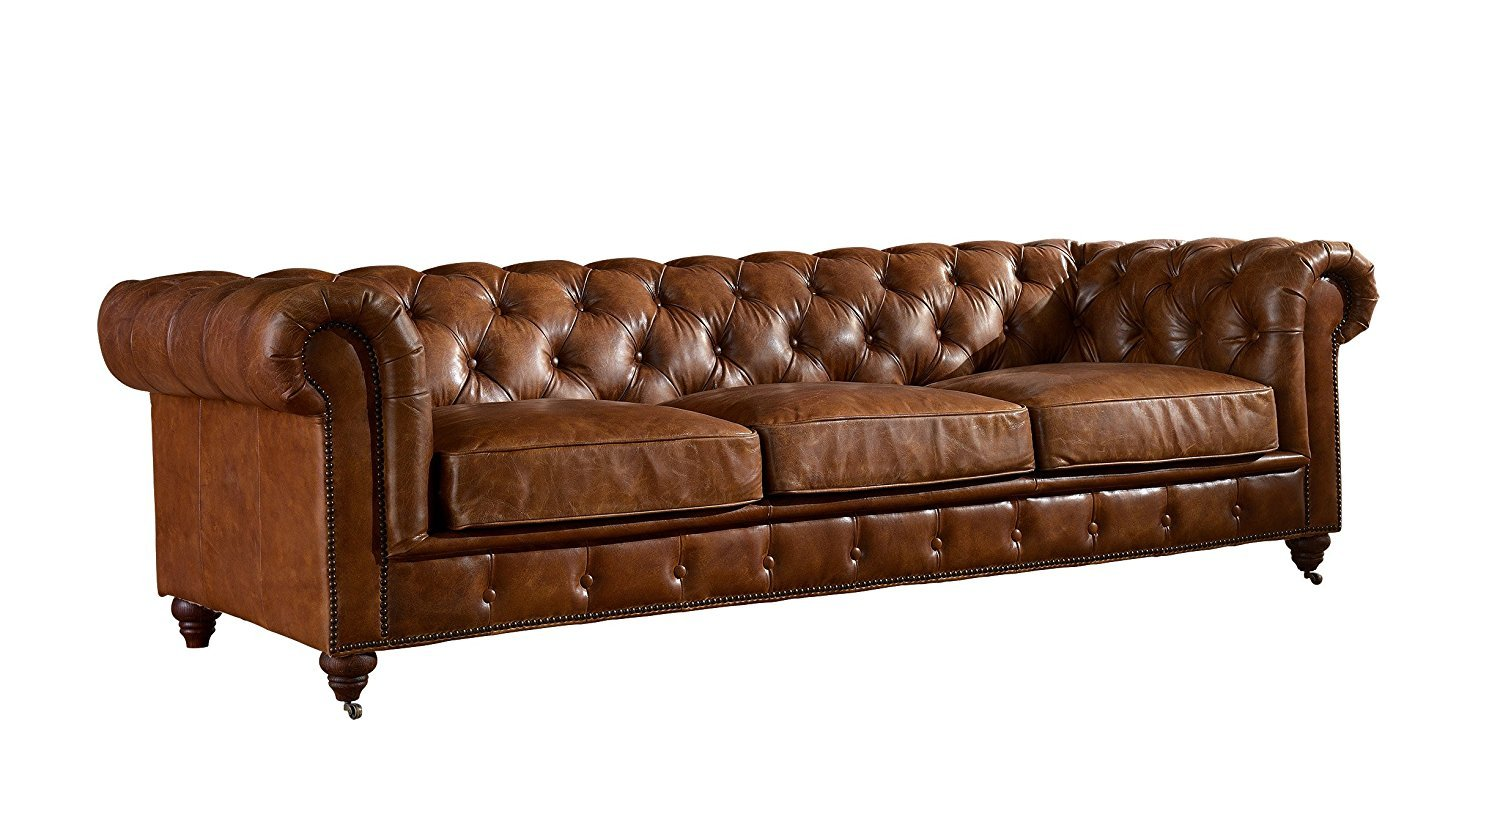 Vintage Ledercouch Vintage Leather Couch - Home Furniture Design